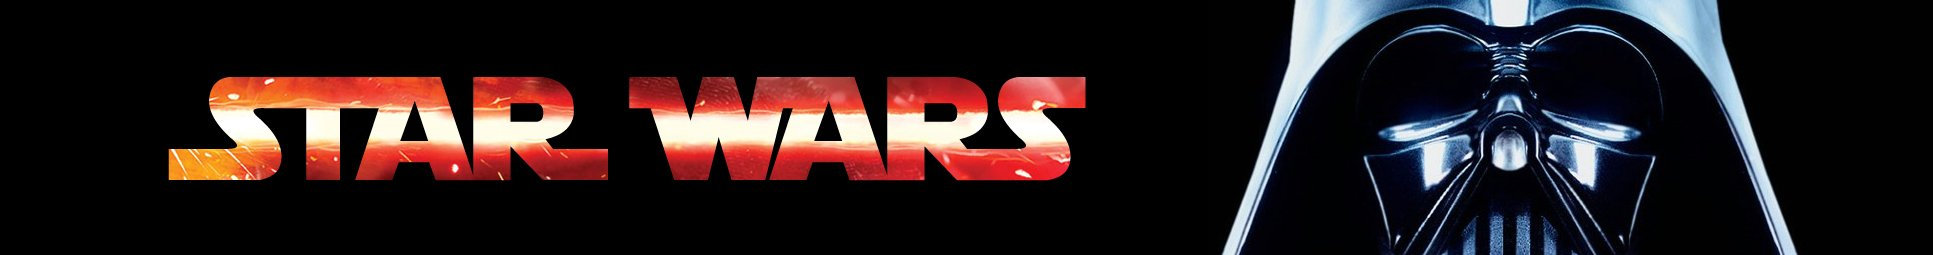 star_wars_header